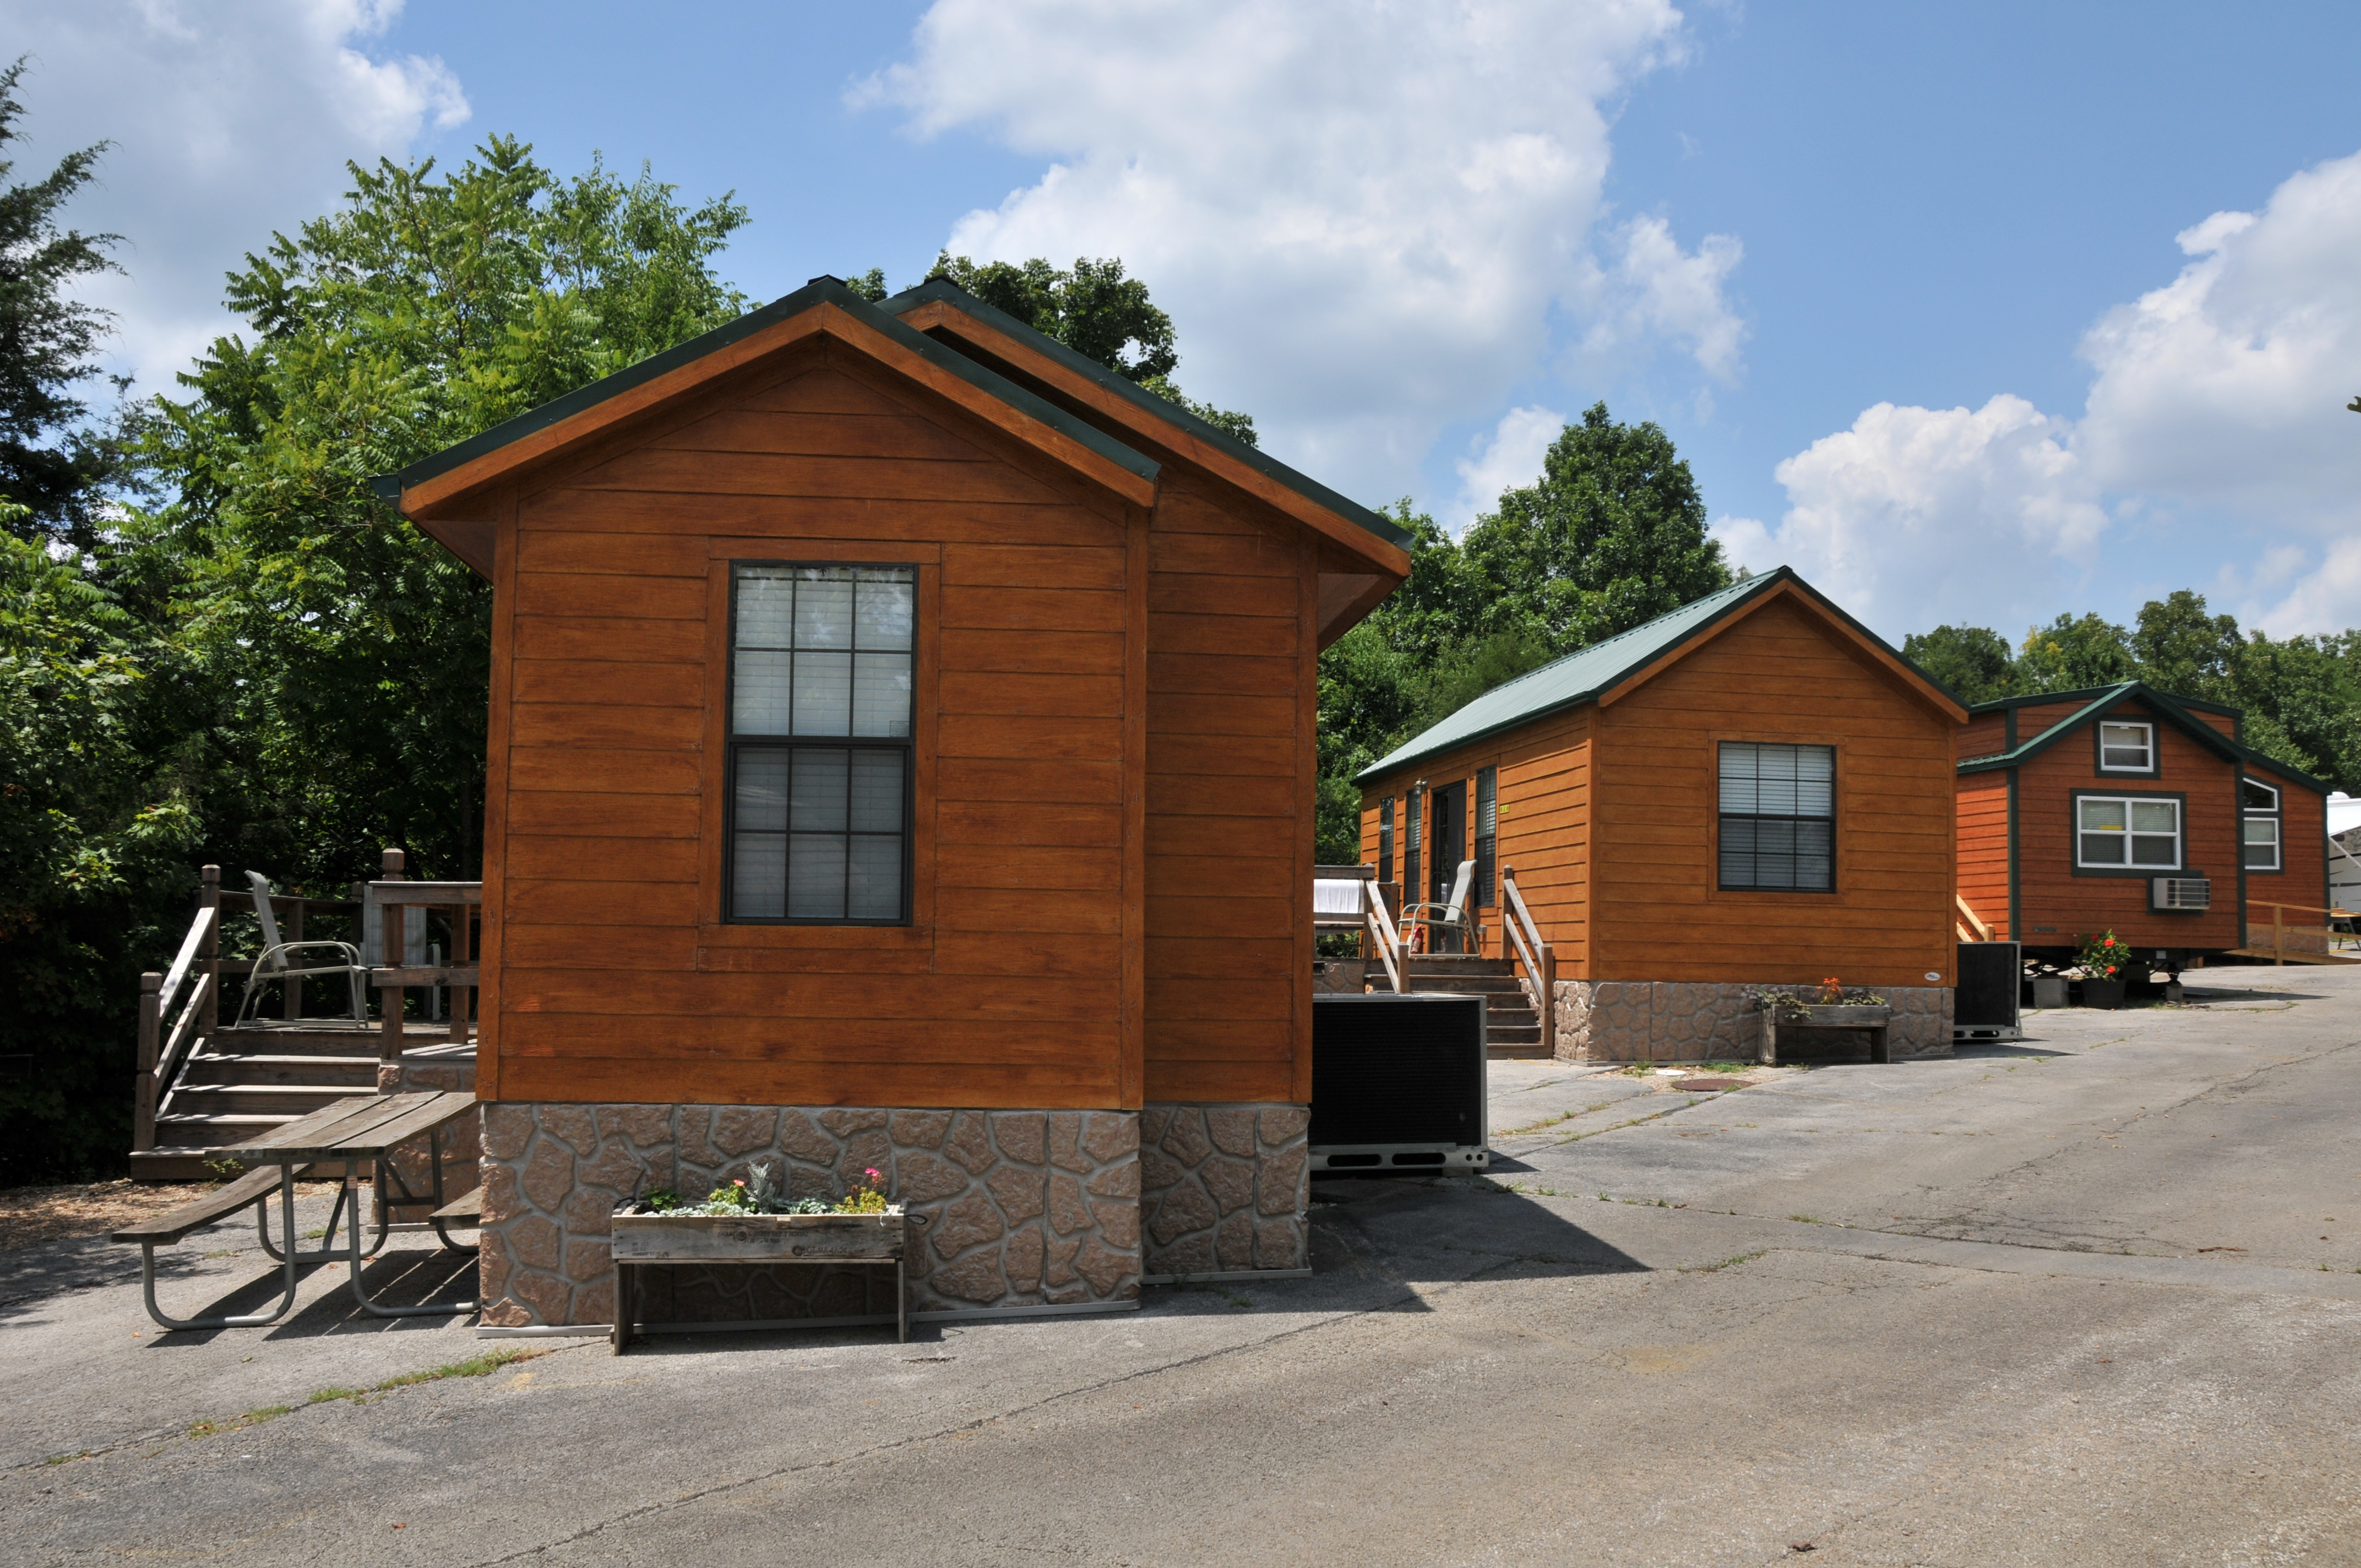 condos bedroom branson com rooms rent for condo in mo cabins thousandhills two